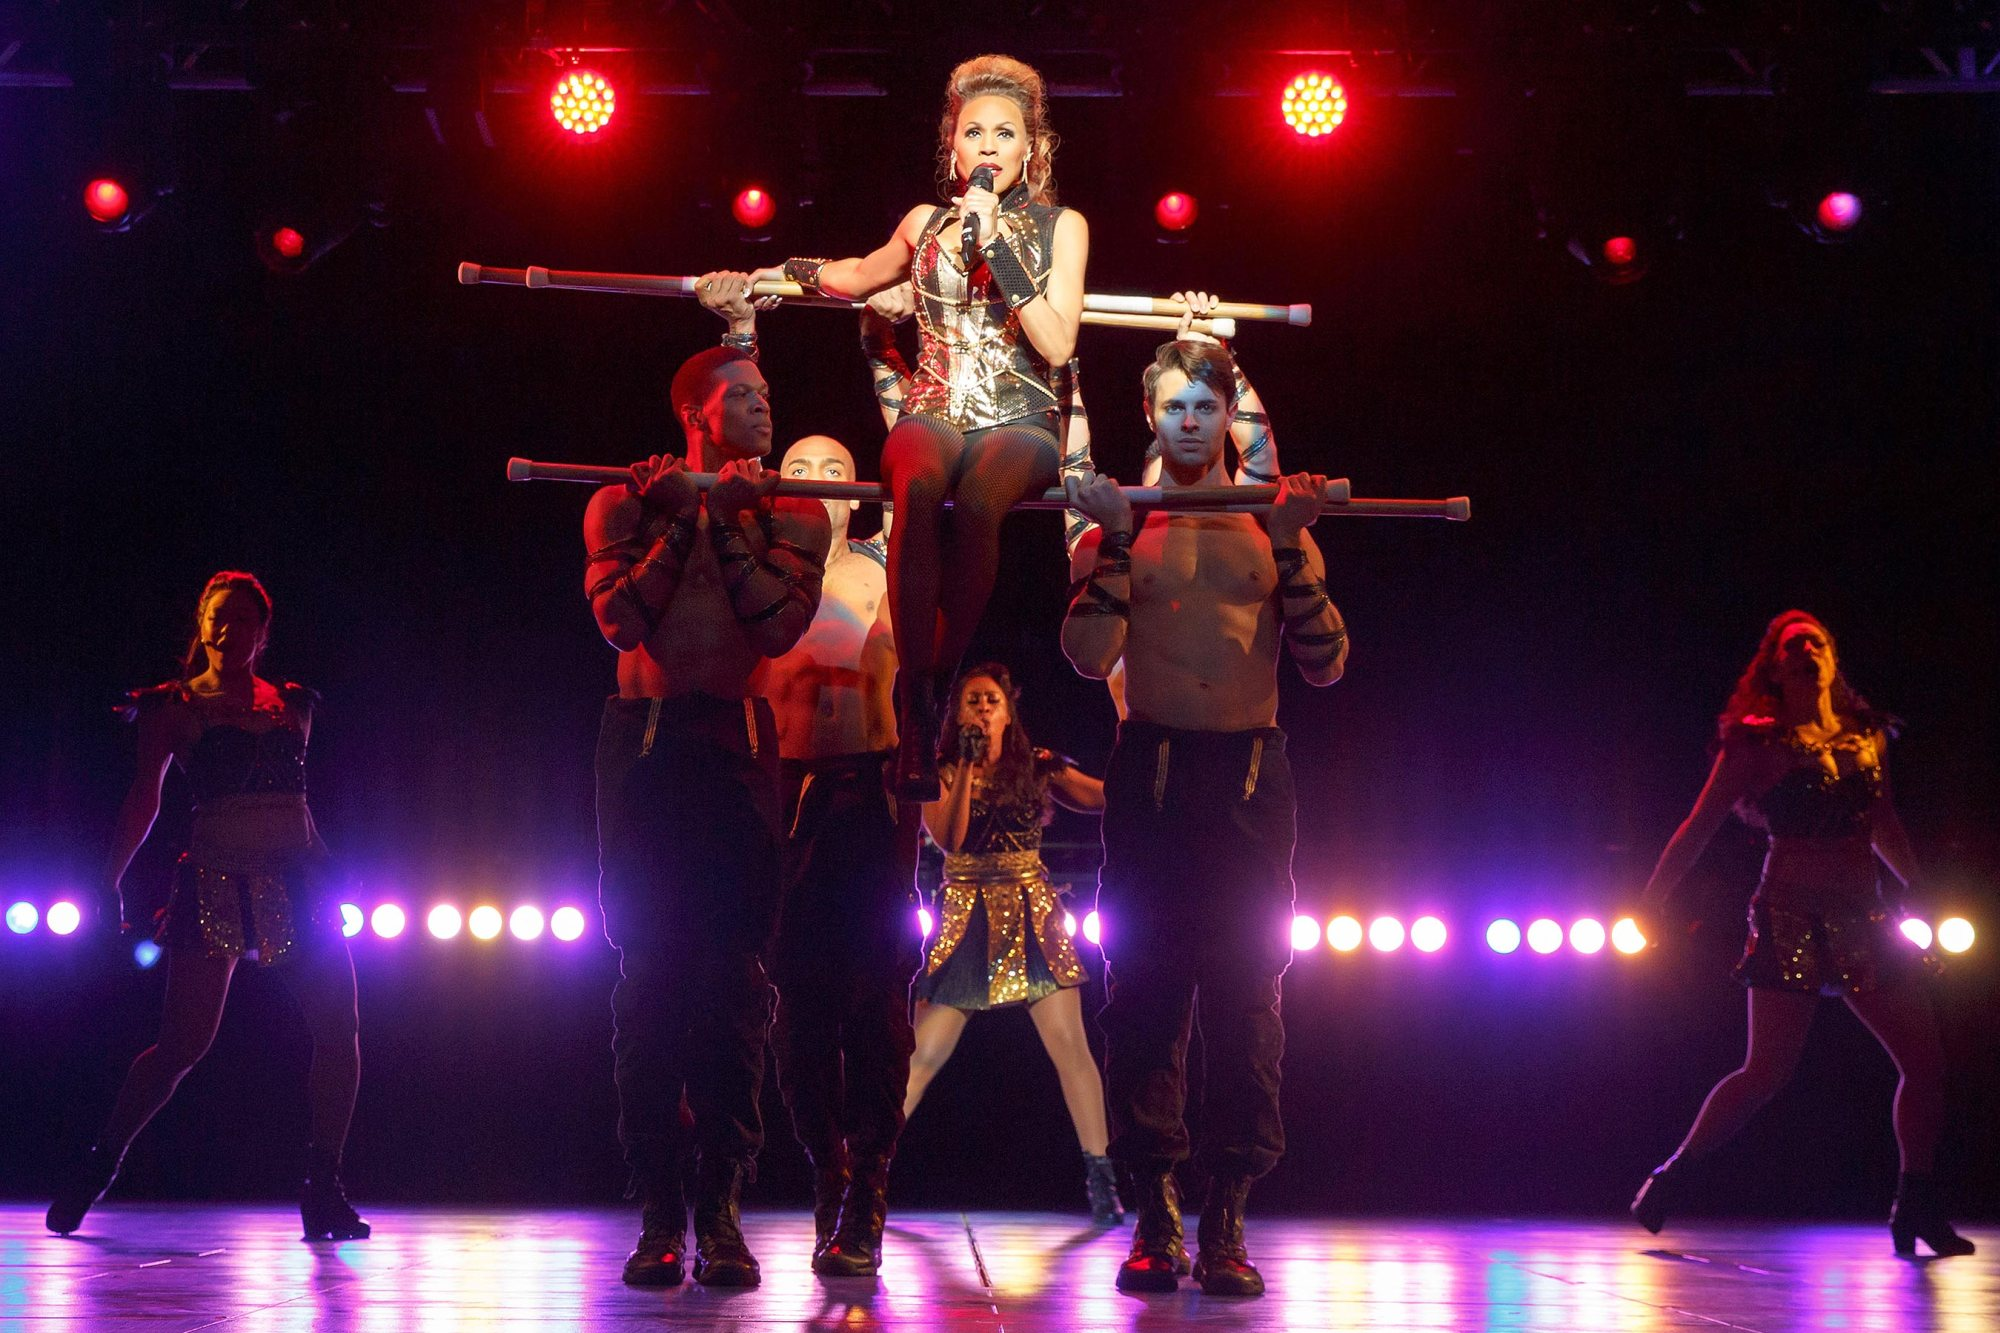 Deborah Cox stars in 'The Bodyguard' at The Pantages Theatre in Hollywood, CA. Photo credit: Joan Marcus